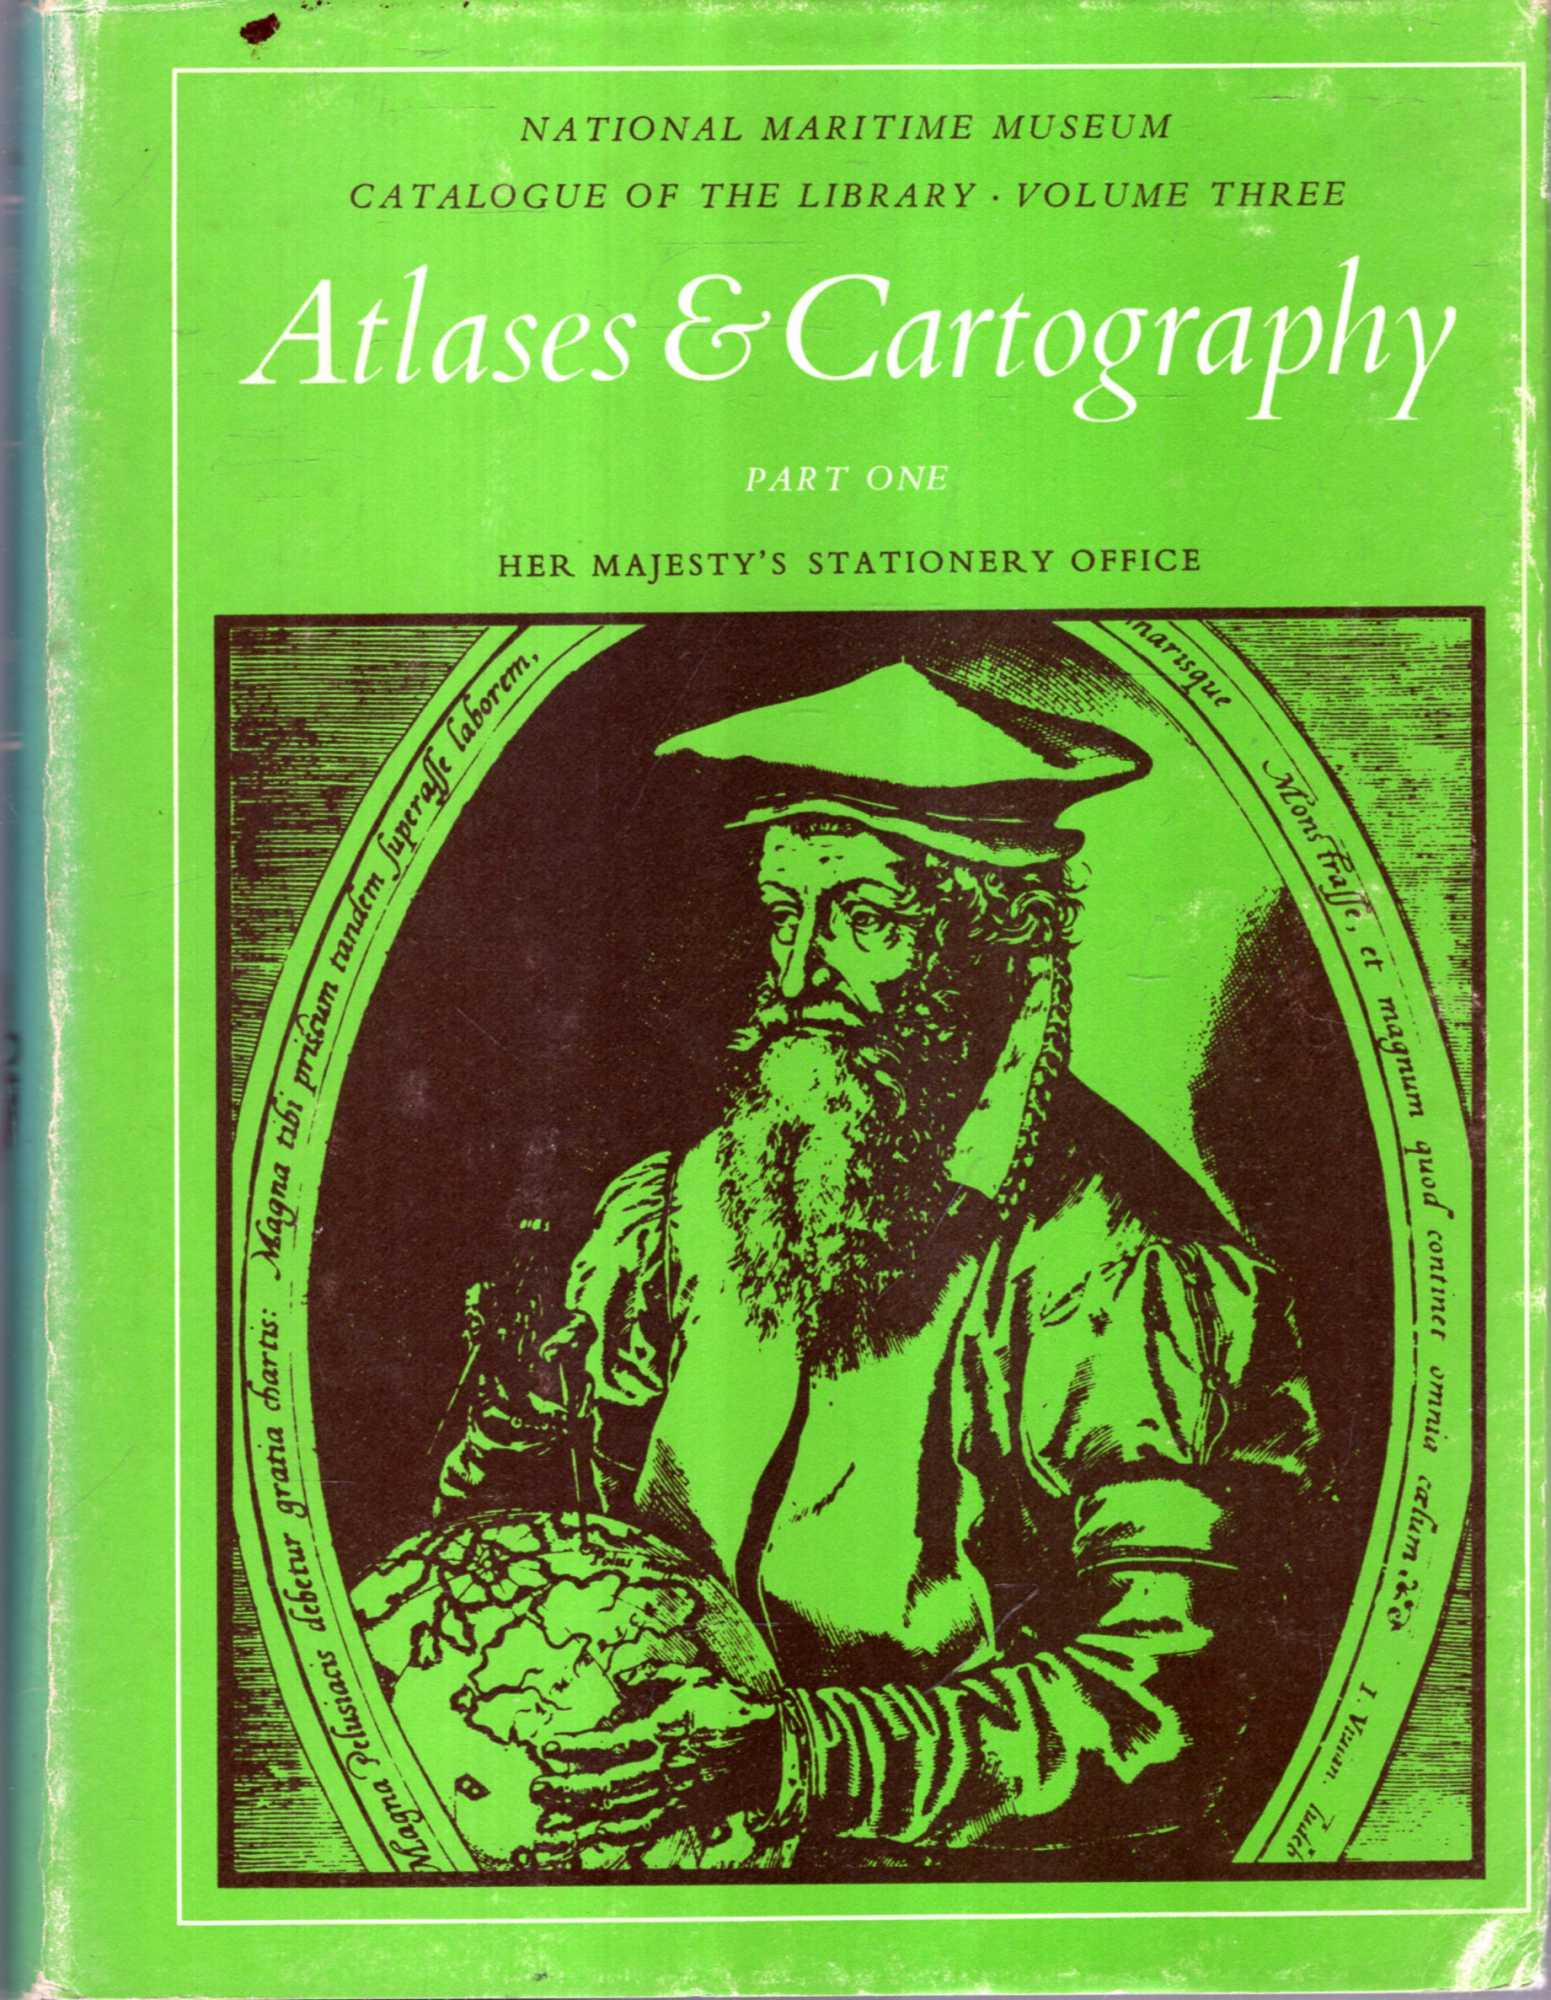 Image for National Maritime Museum Library Catalogue volume three, Parts One & Two: Atlases and Cartography (two books)